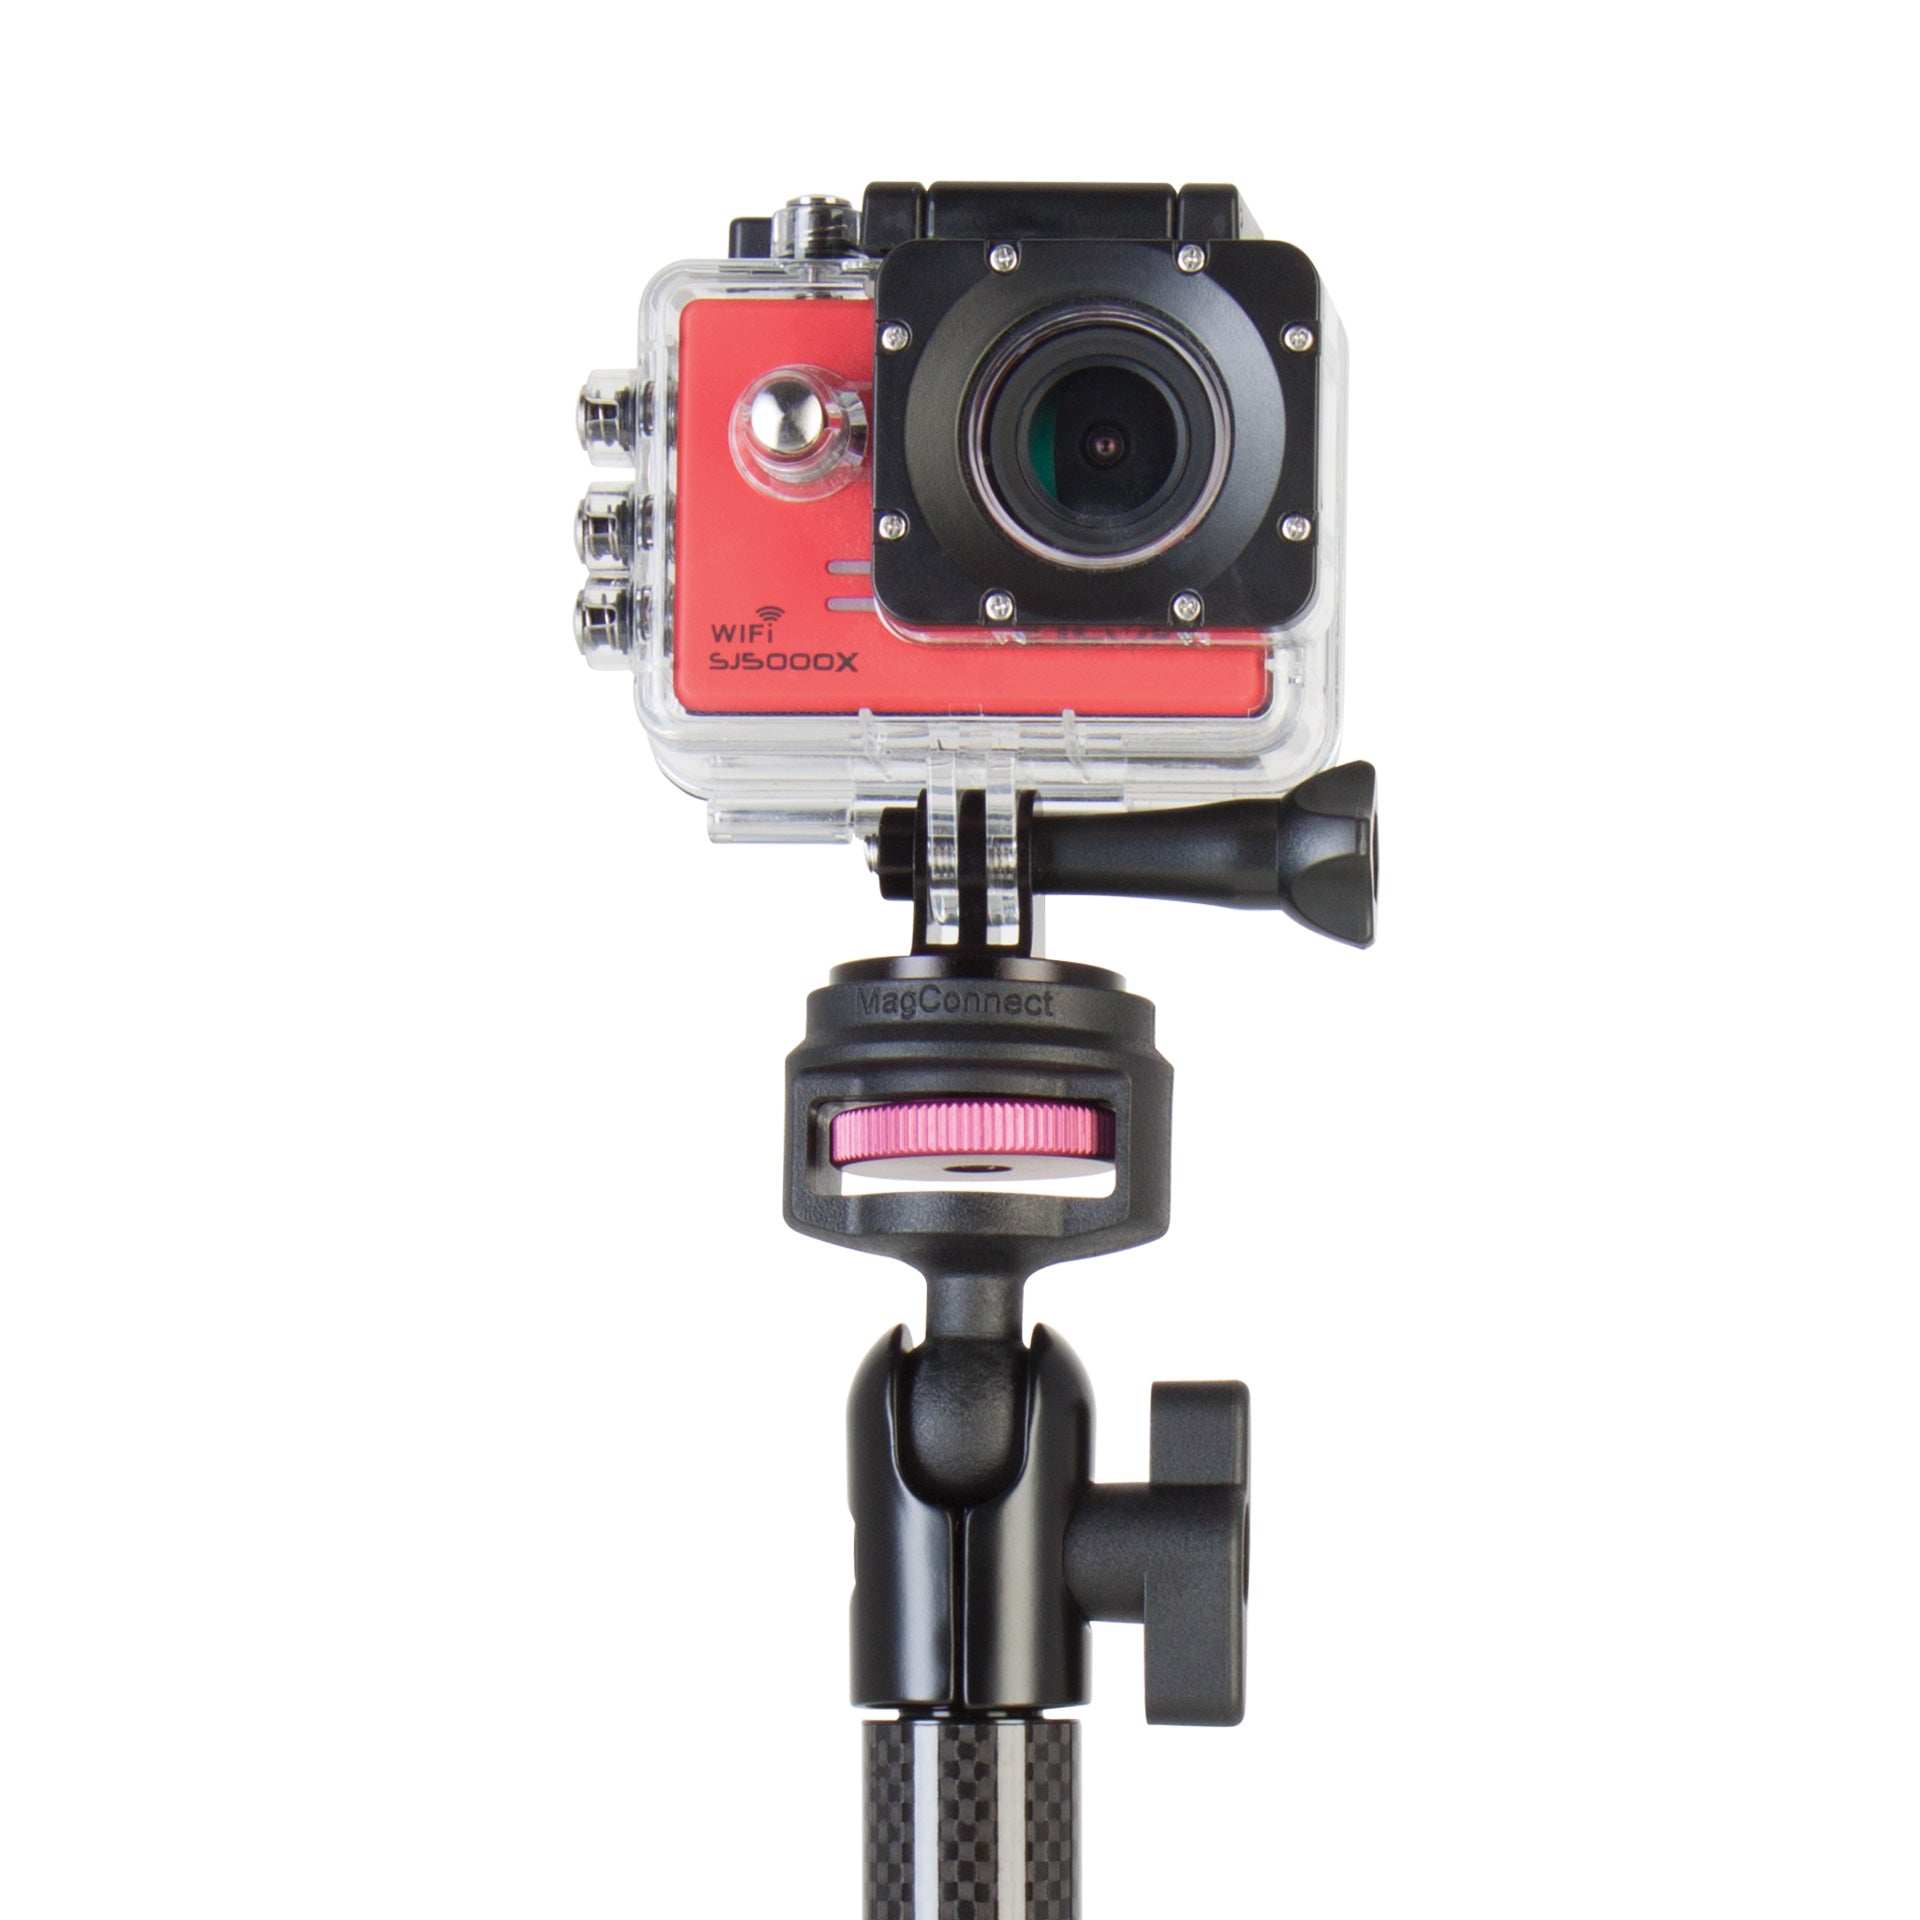 mount-bundles - MagConnect Wall   Counter Mount for GoPro Camera The Joy Factory